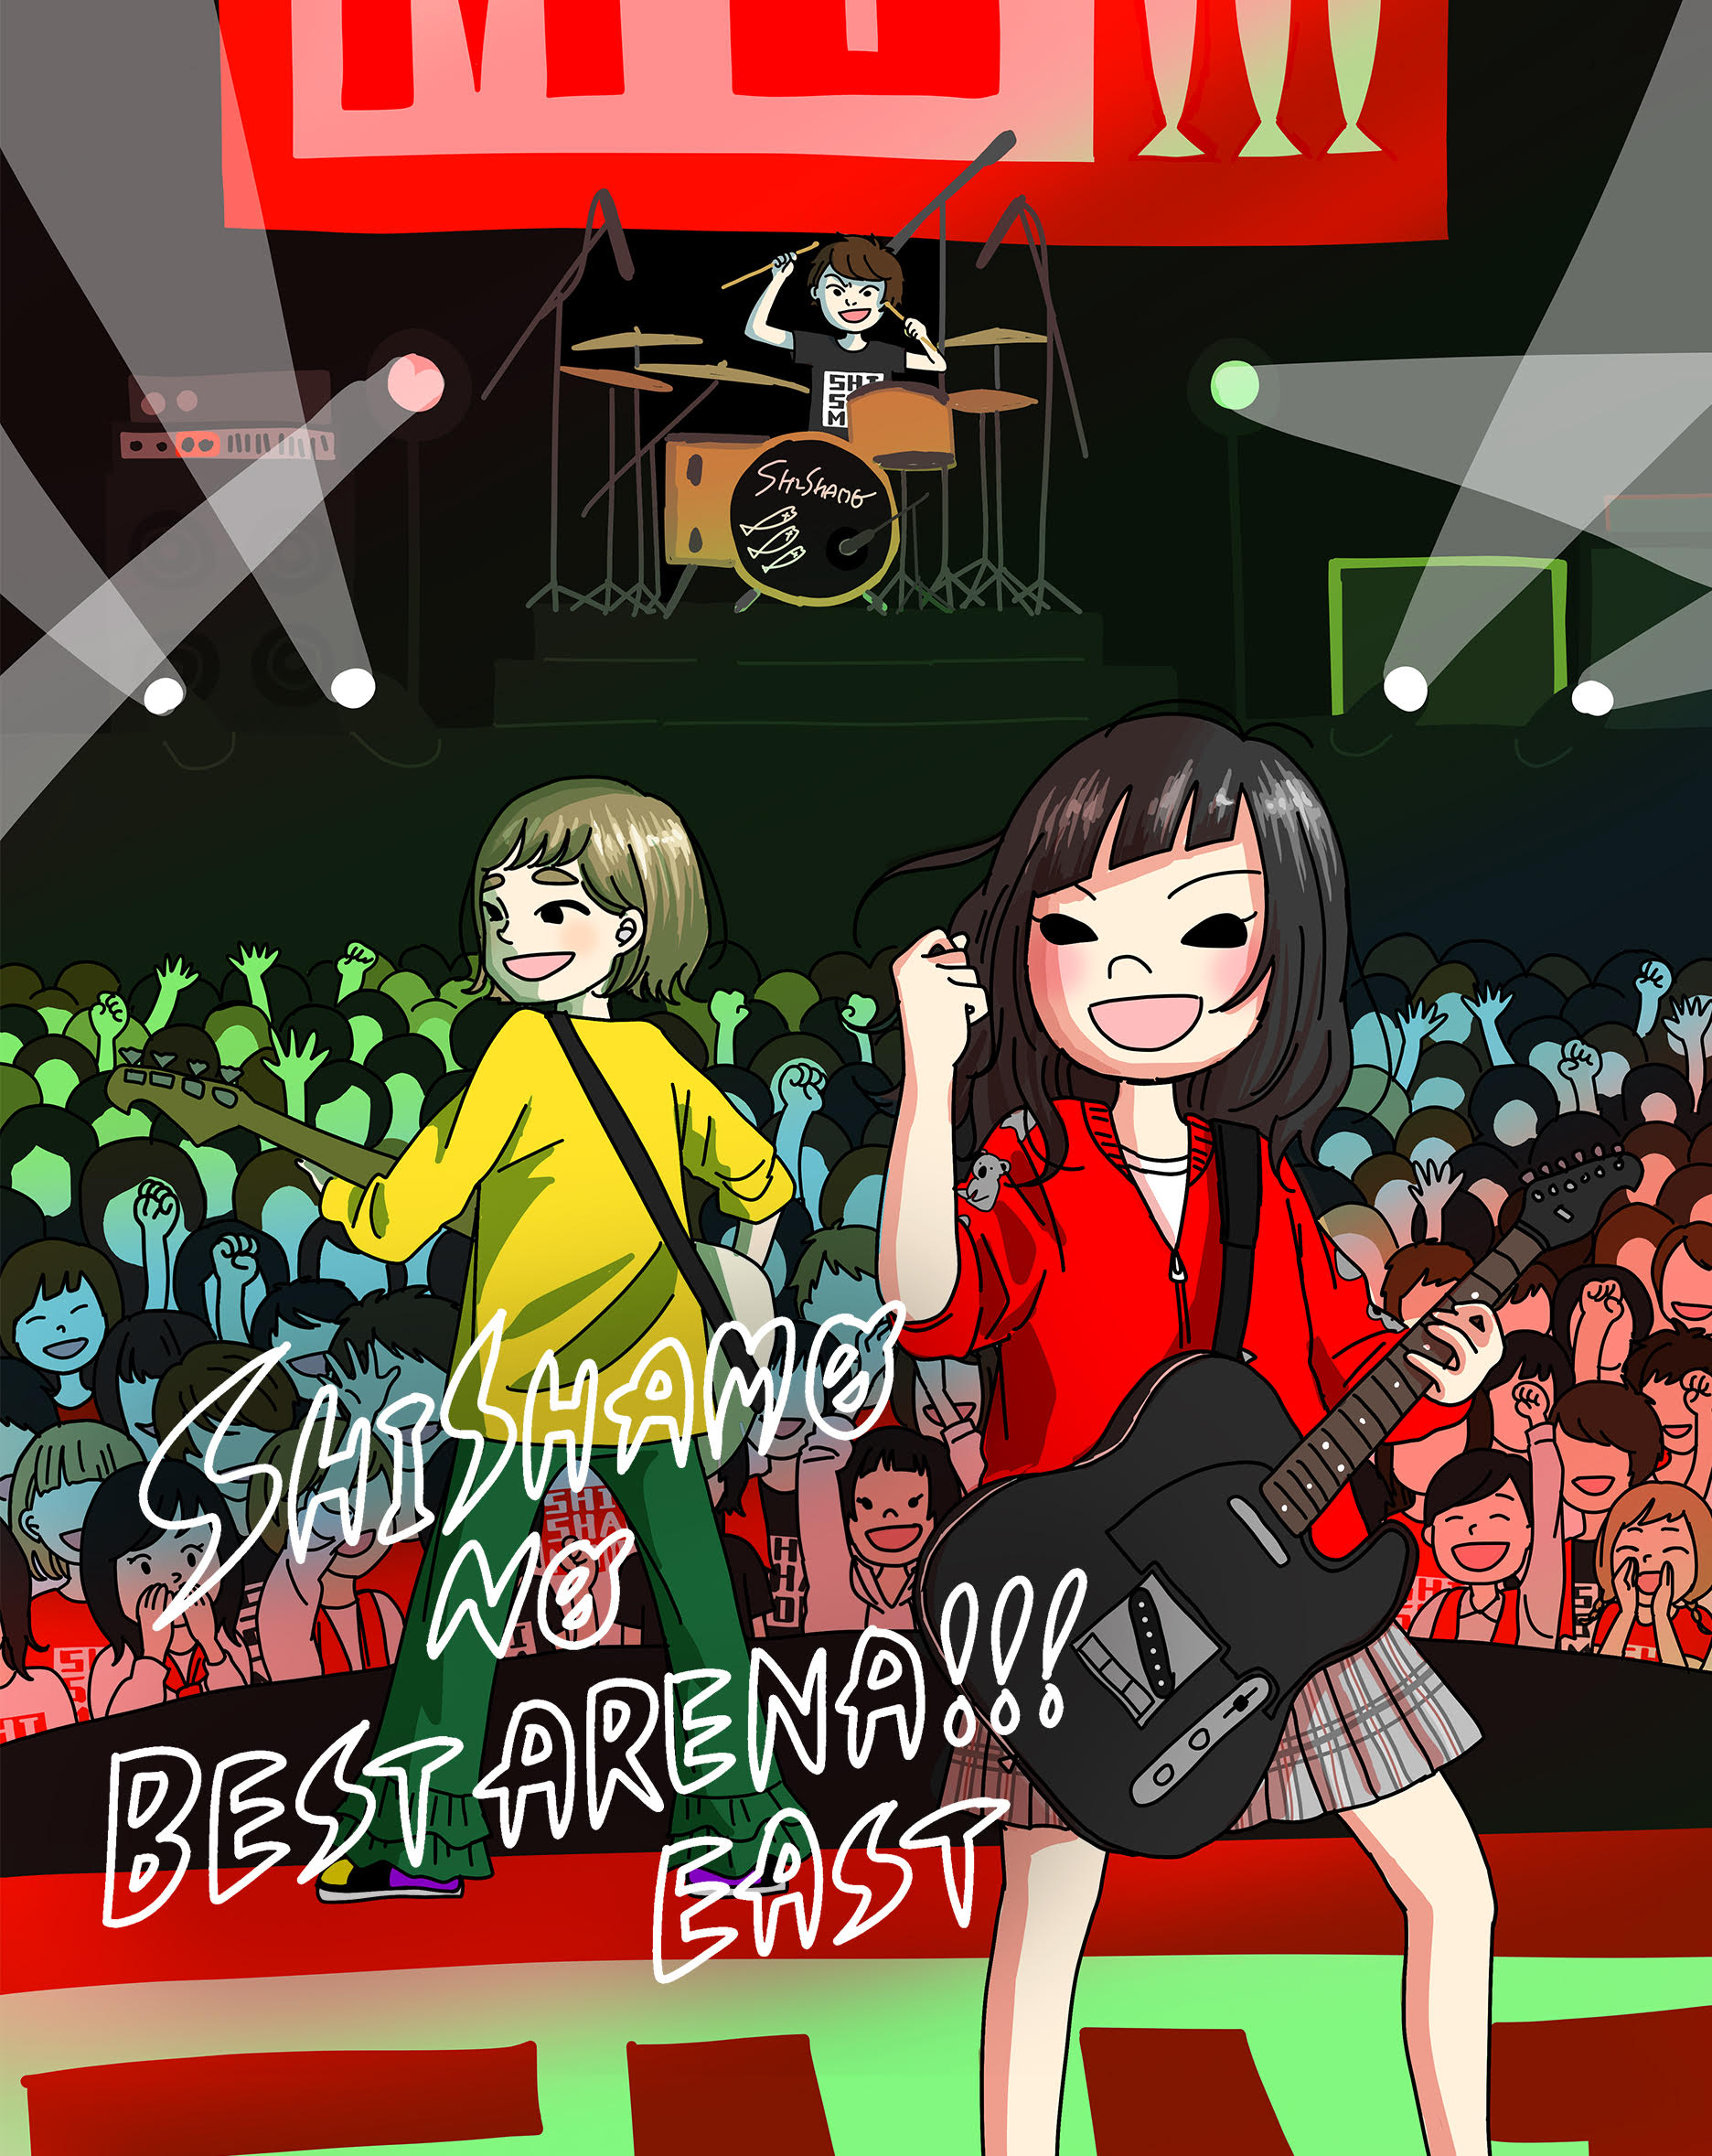 SHISHAMO NO BEST ARENA!!! EAST